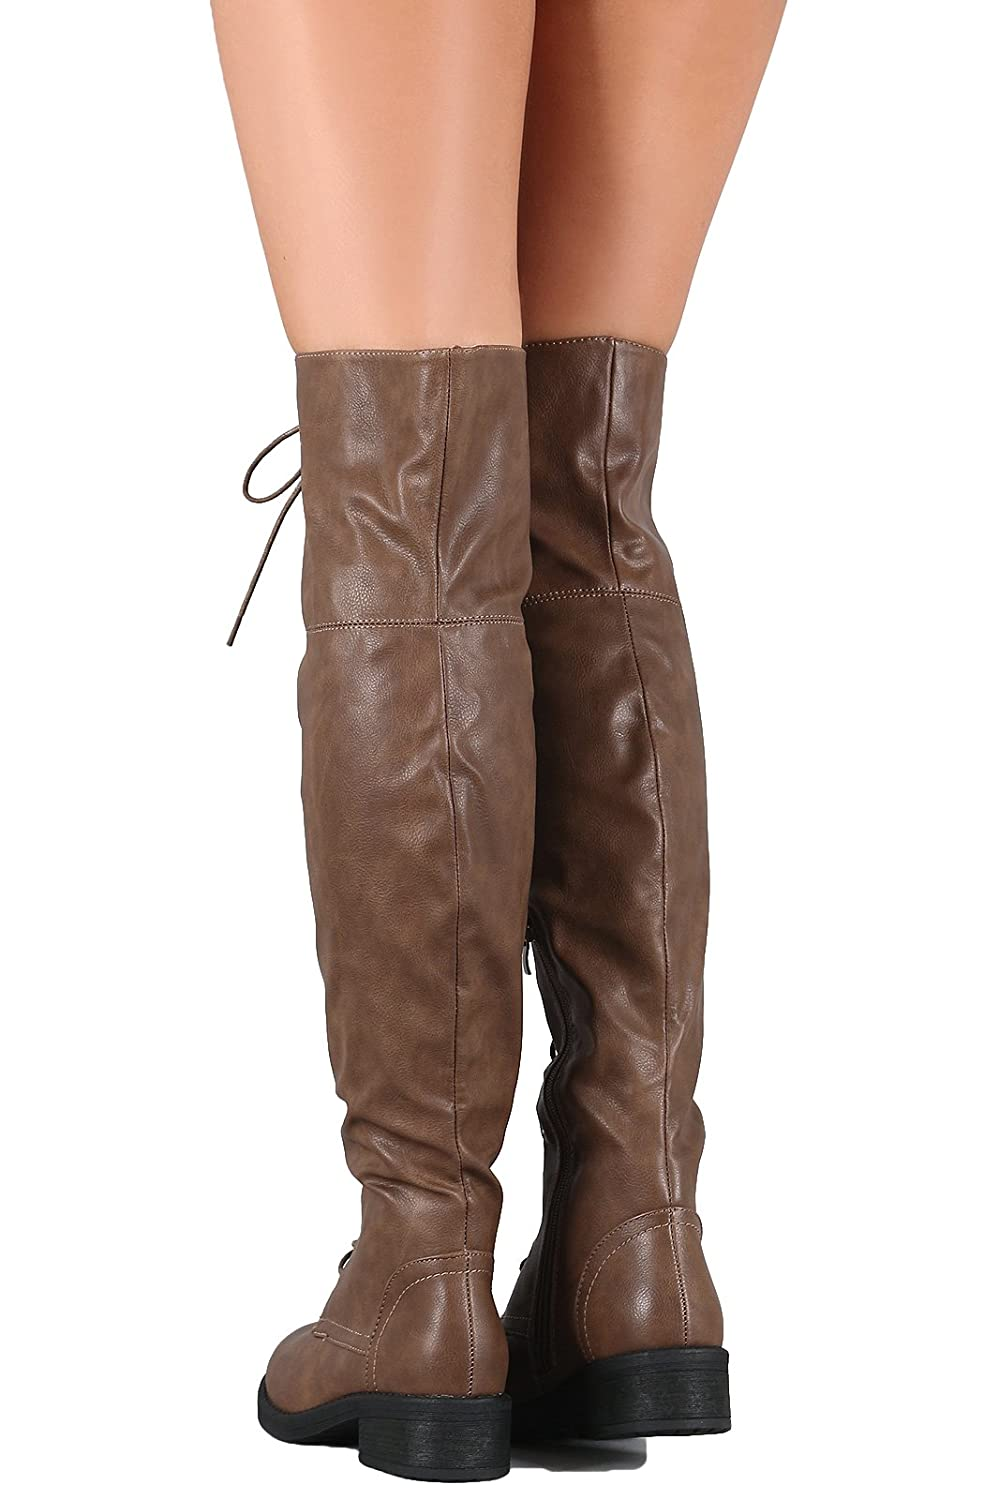 WestCoast Womens Over The Knee Boots Tall Lace Riding Boots Thigh High Combat Boots Megen-06